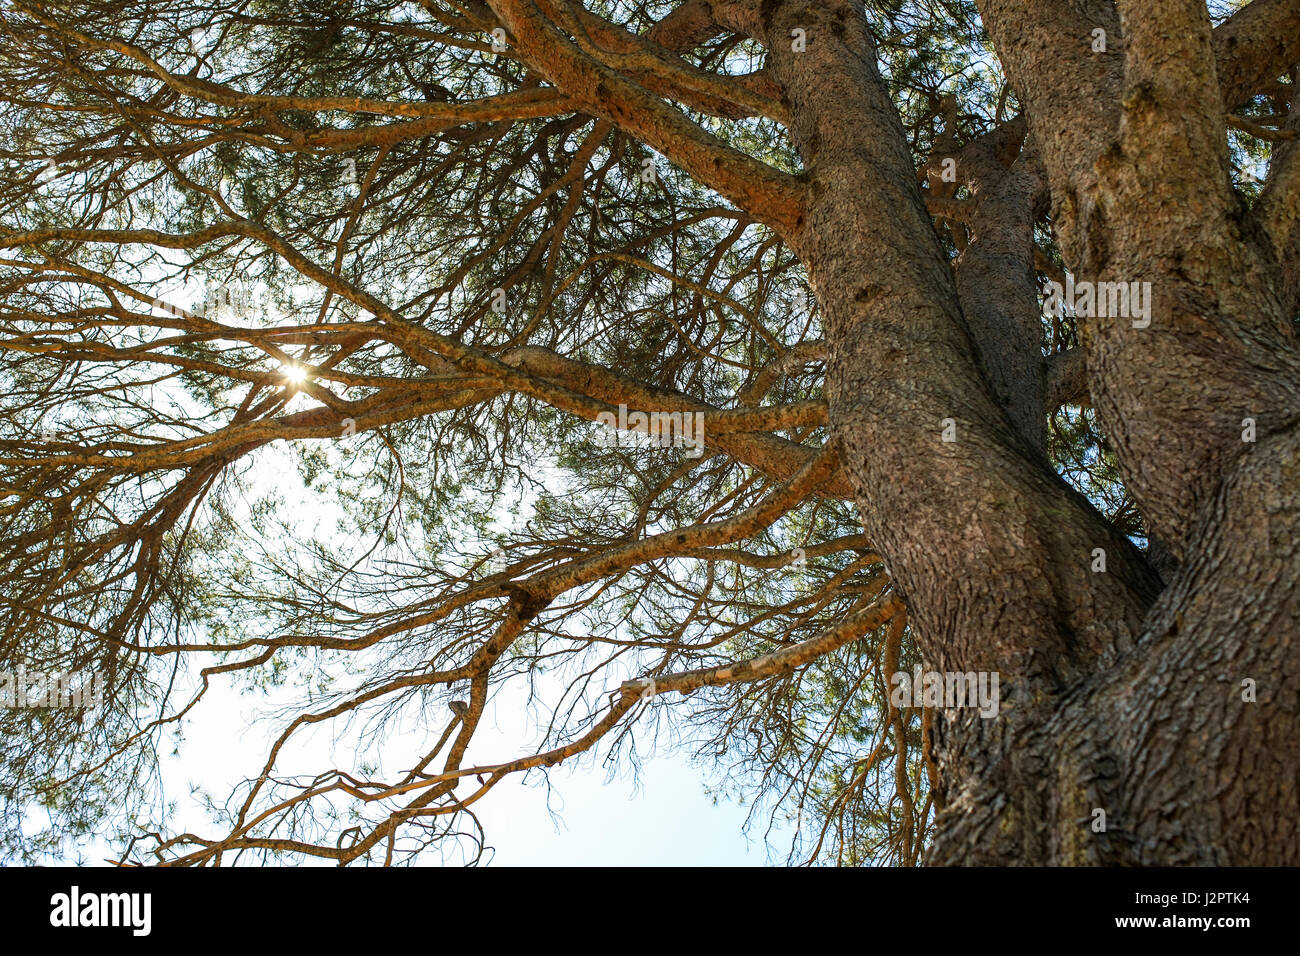 Under Aleppo pine tree, looking up towards the sun producing a flare - Stock Image